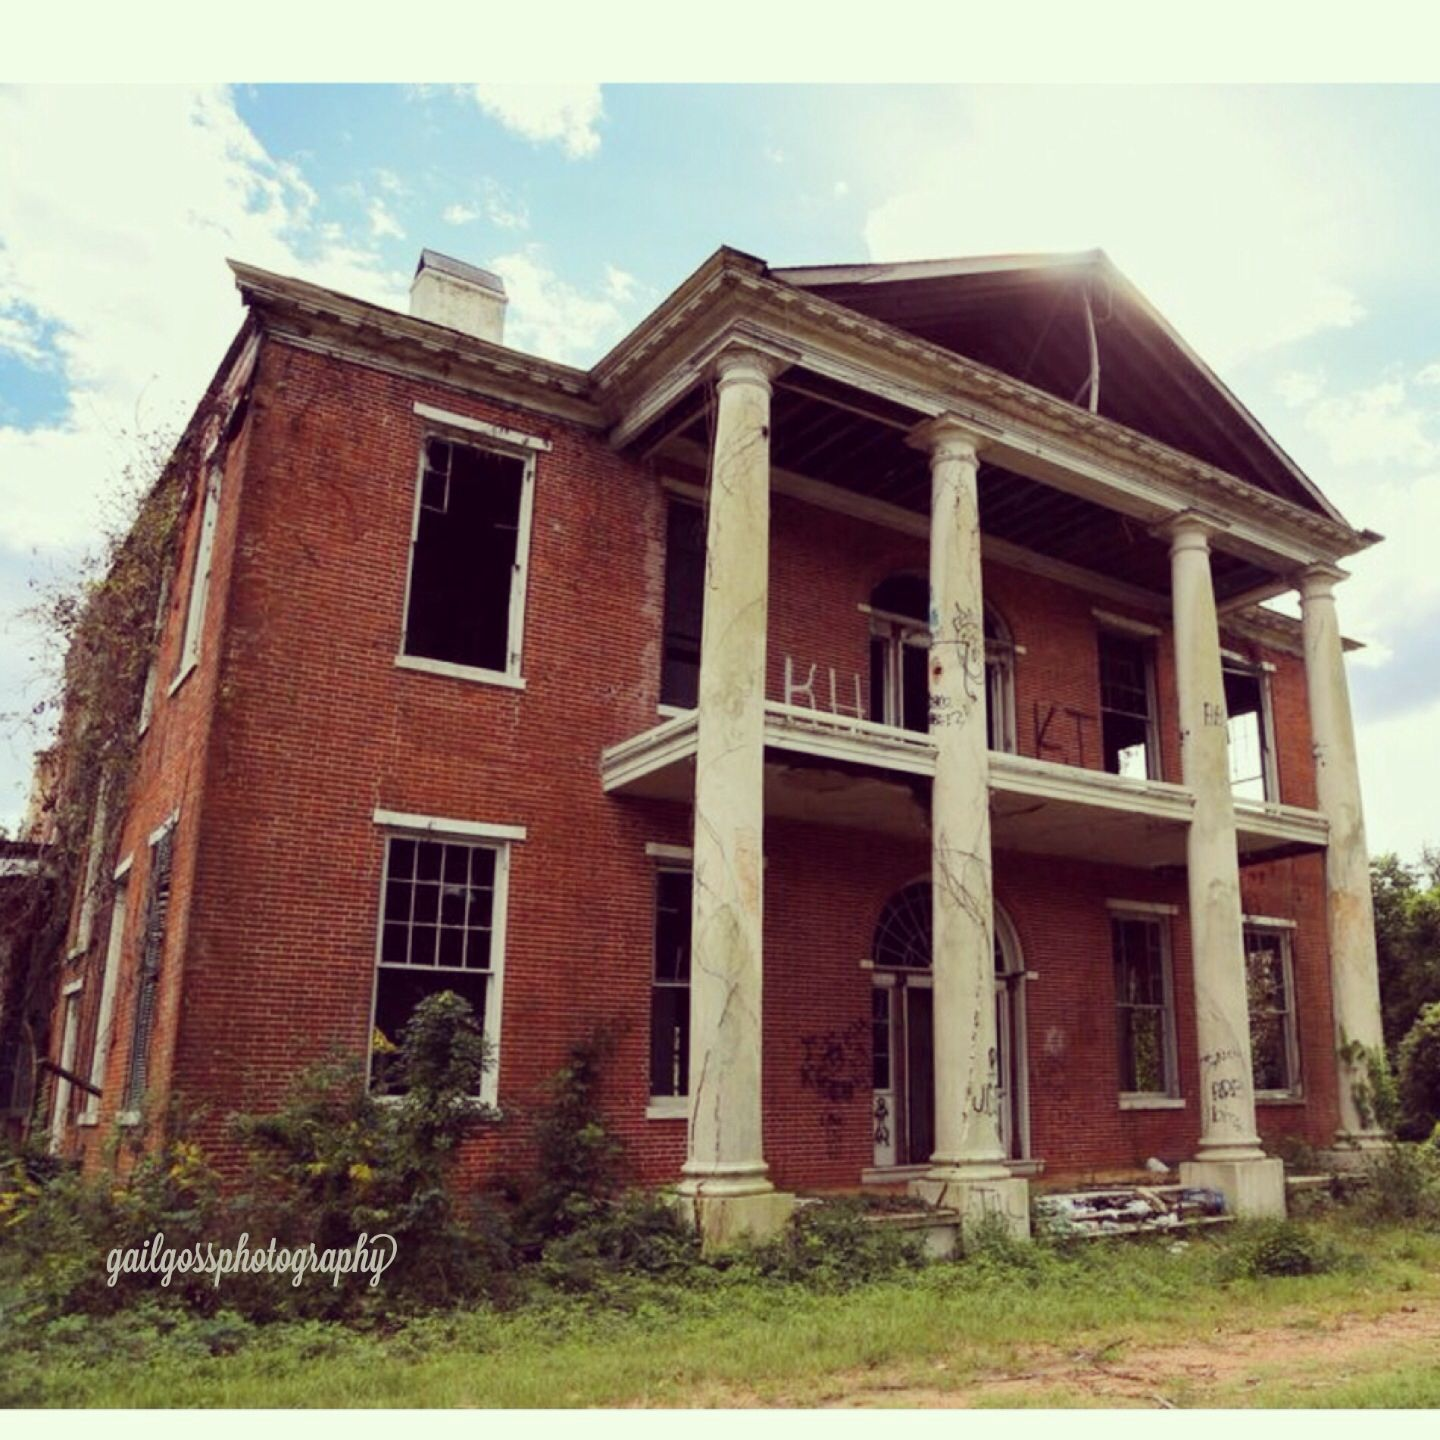 Pleasing Abandoned Antebellum Mansion In Nachez Mississippi Complete Home Design Collection Papxelindsey Bellcom